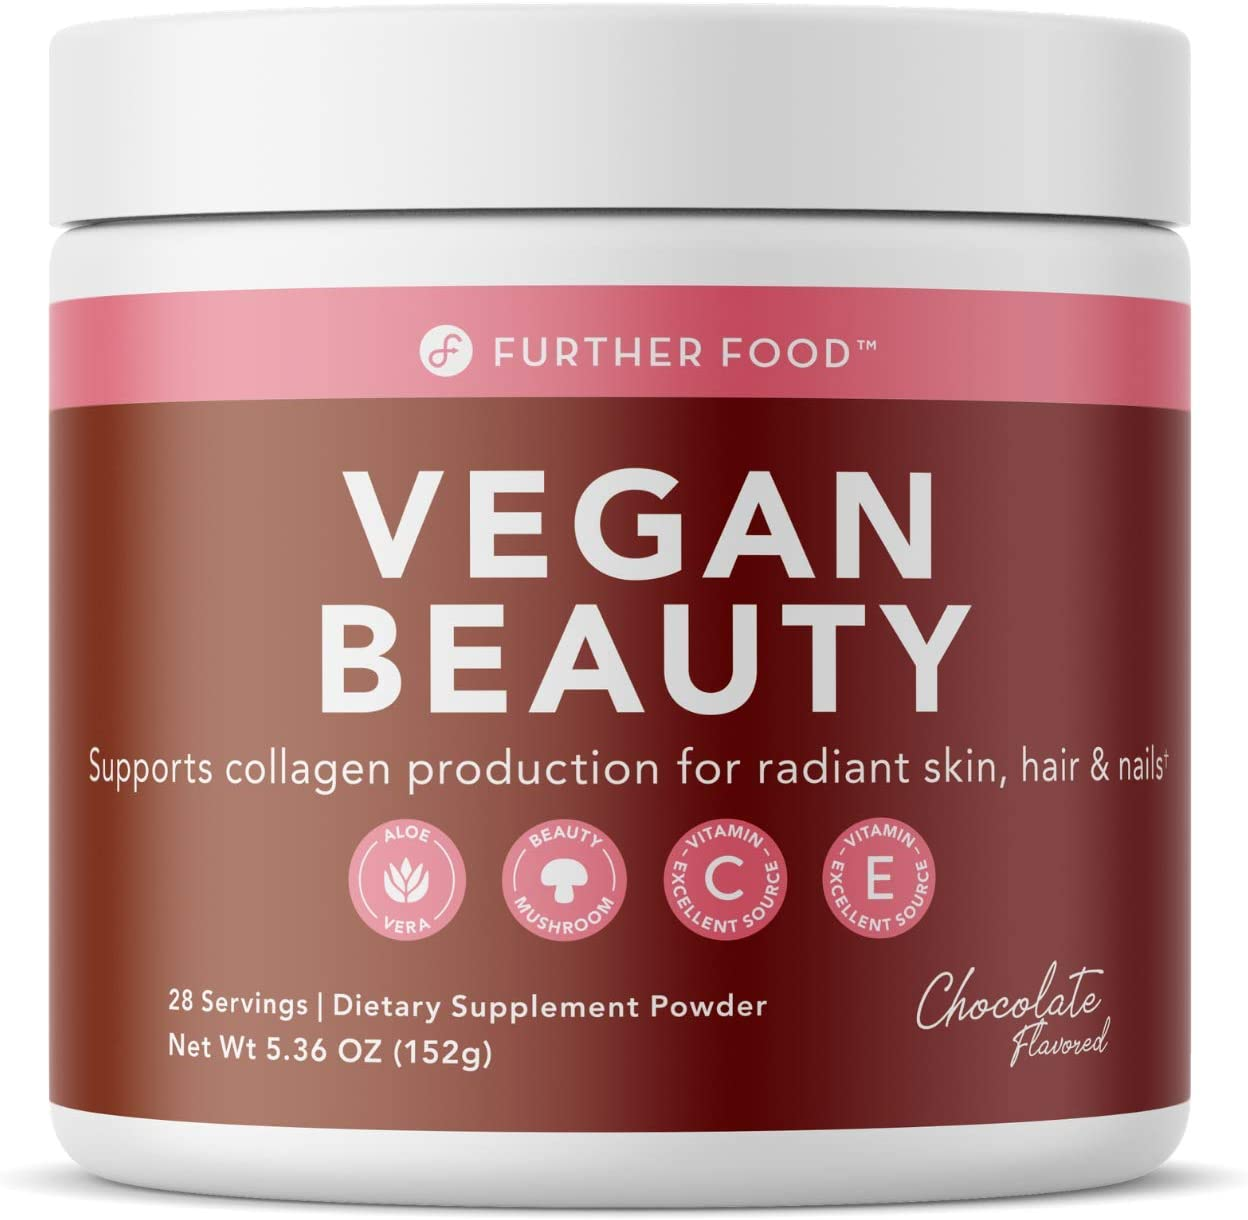 Vegan Beauty Collagen Booster Builder Vegetarian Plant-Based Supplement - Delicious Chocolate Flavor for Beautiful Skin, Hair and Nail Health Vitamin C and E + Aloe Vera (28 Servings)